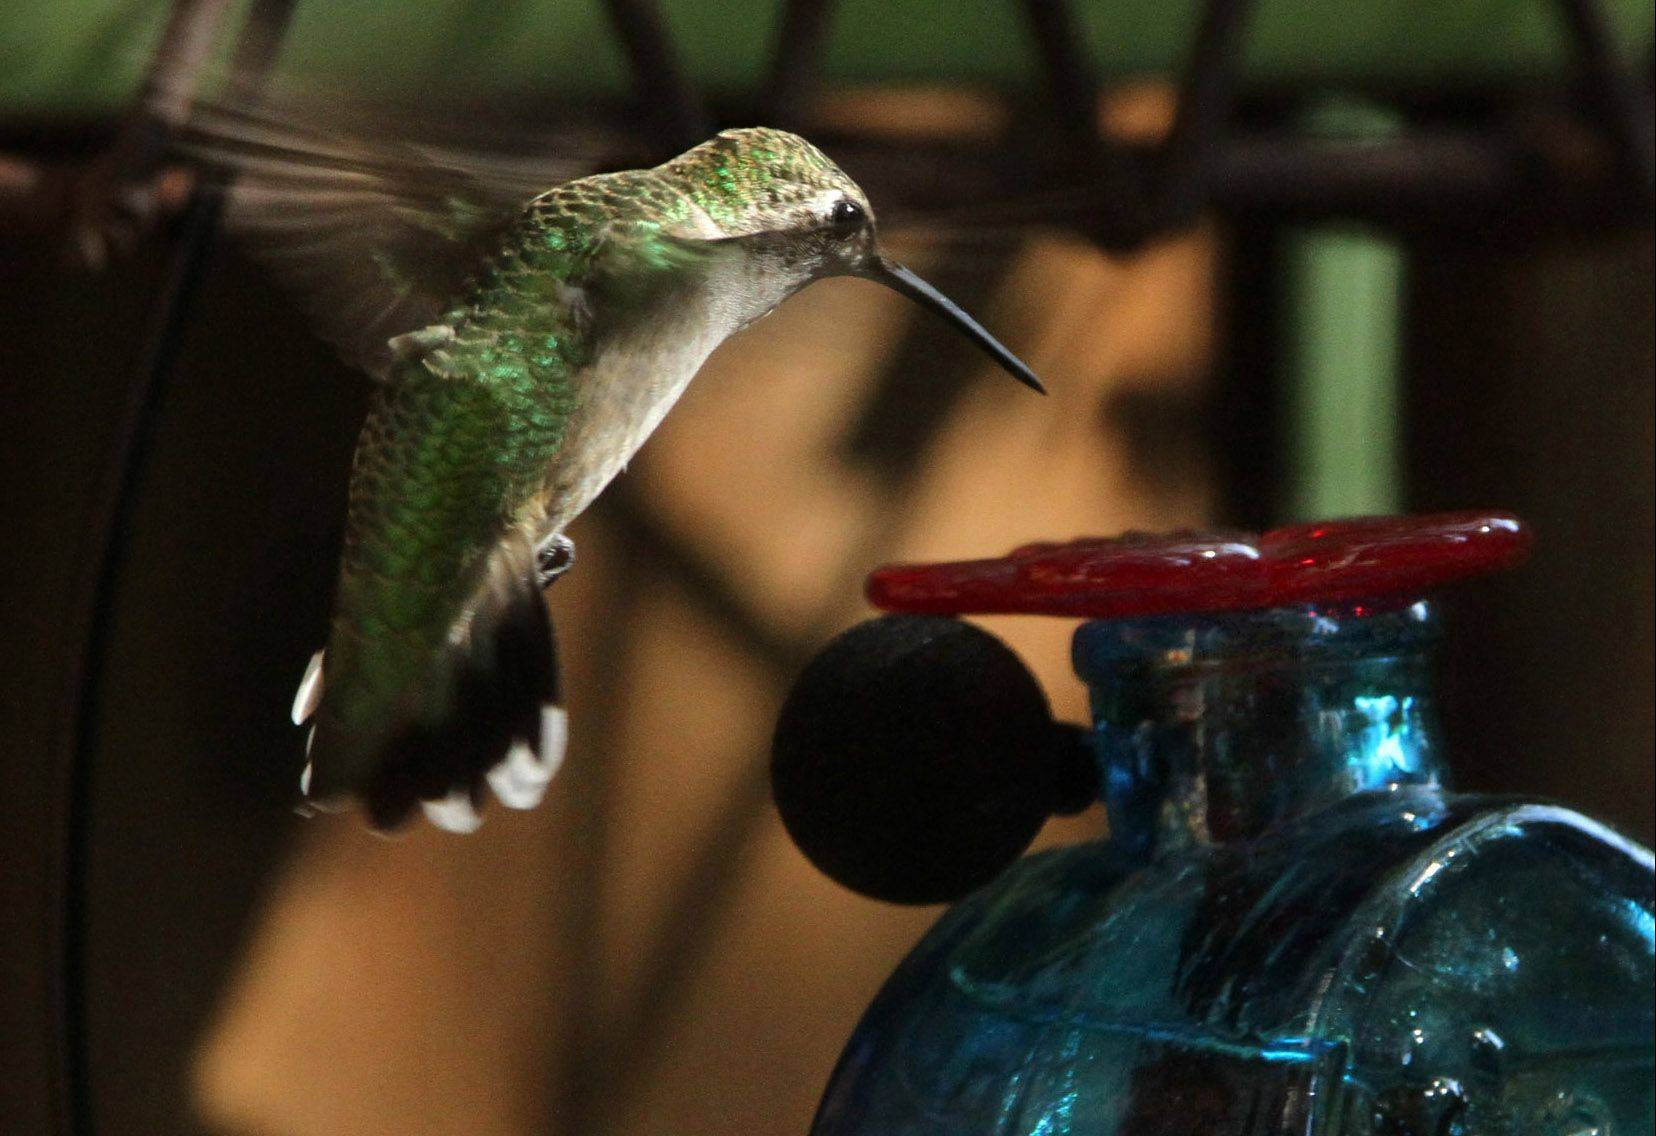 A female 3-inch ruby-throated hummingbird puts the brakes on approaching a non-perch feeder. The wireless tie-clip microphone was attached by Daily Herald photographer George LeClaire.